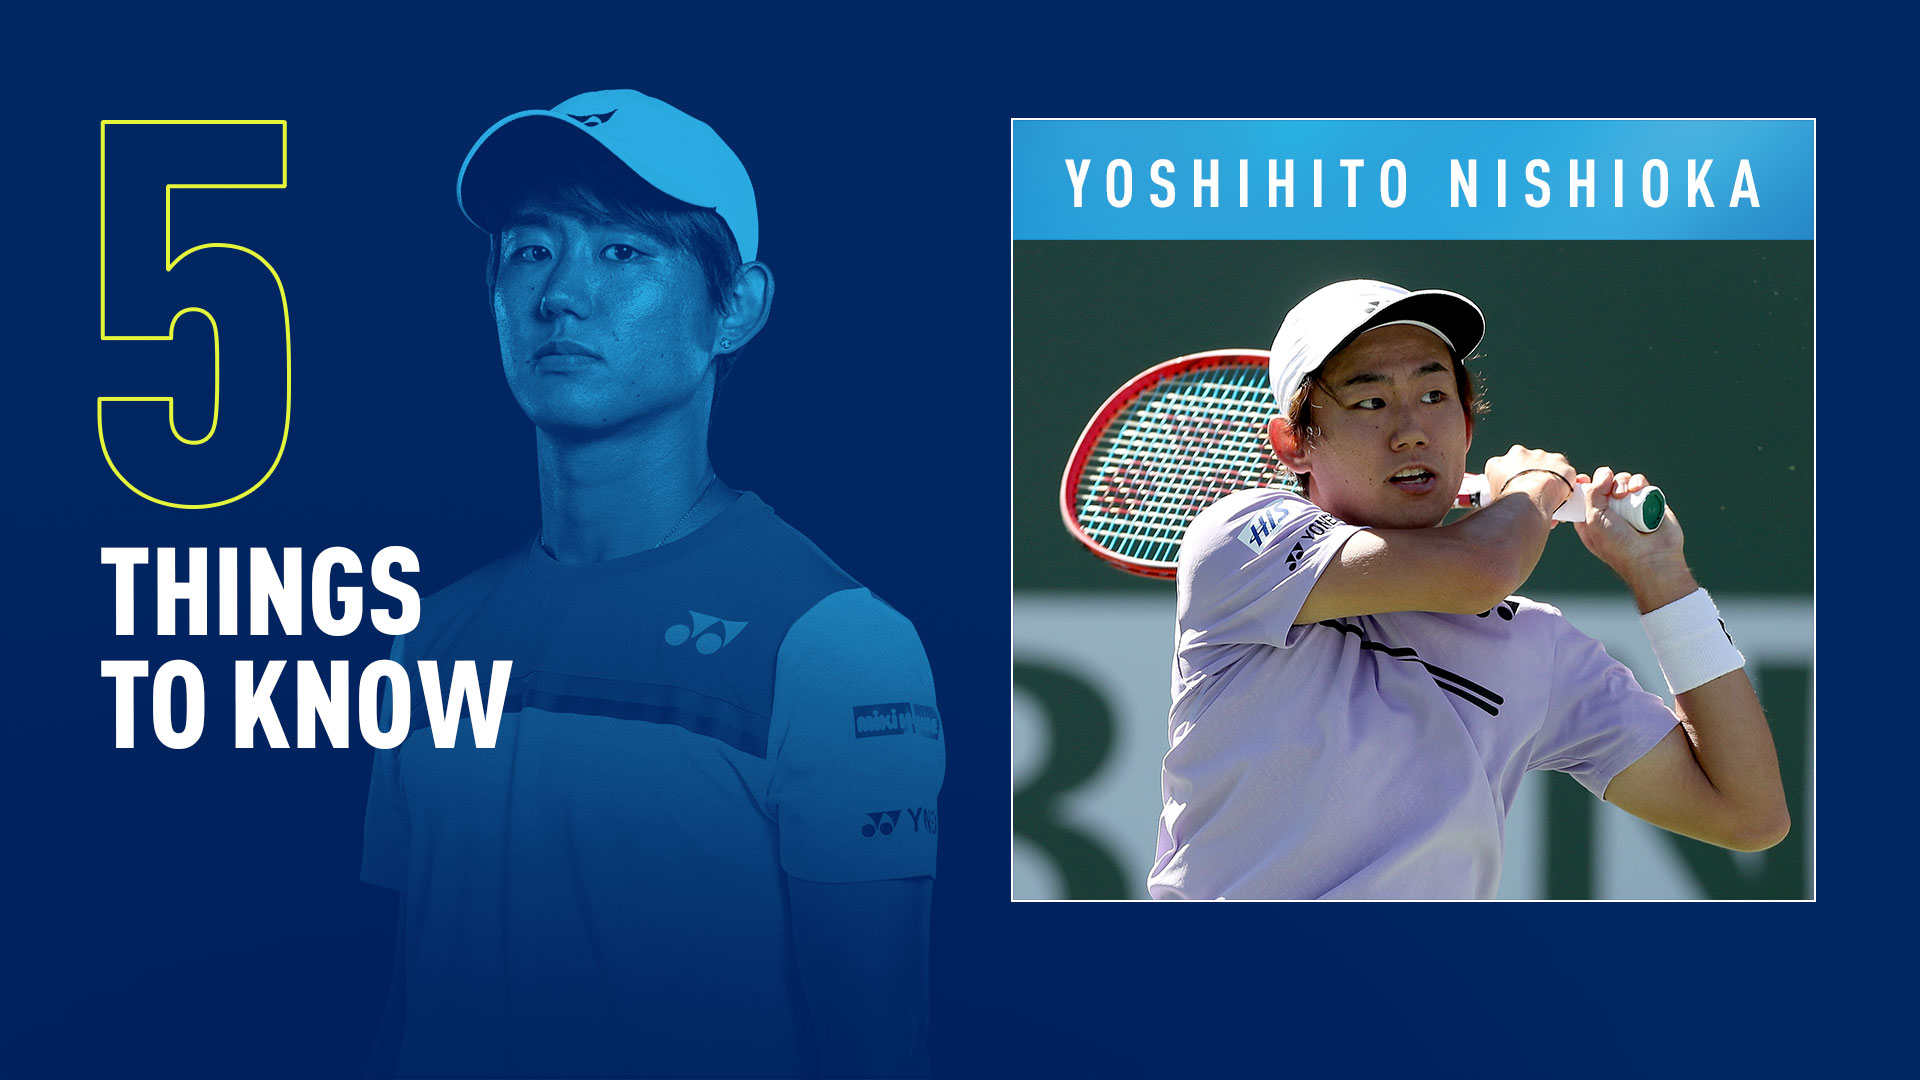 Yoshihito Nishioka is currently at a career-high No. 48 in the FedEx ATP Rankings.